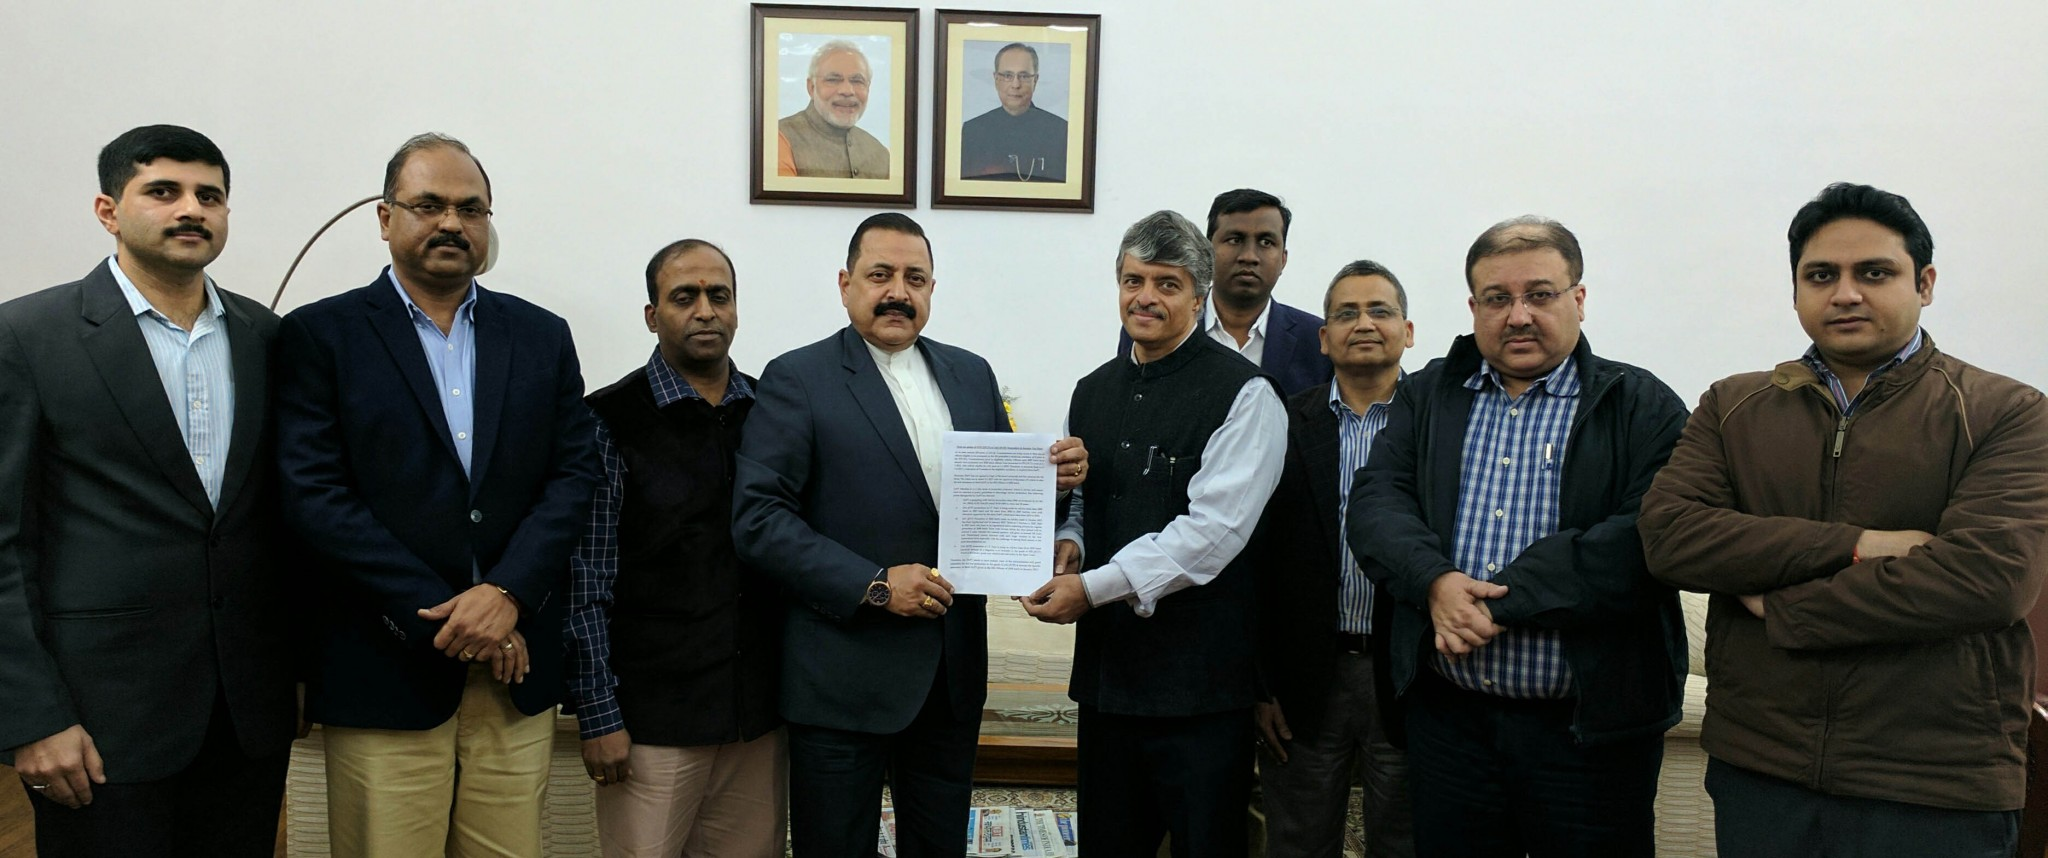 Union Minister Dr Jitendra Singh receiving a memorandum from a delegation of Indian Revenue Service (IRS) officers, at New Delhi.